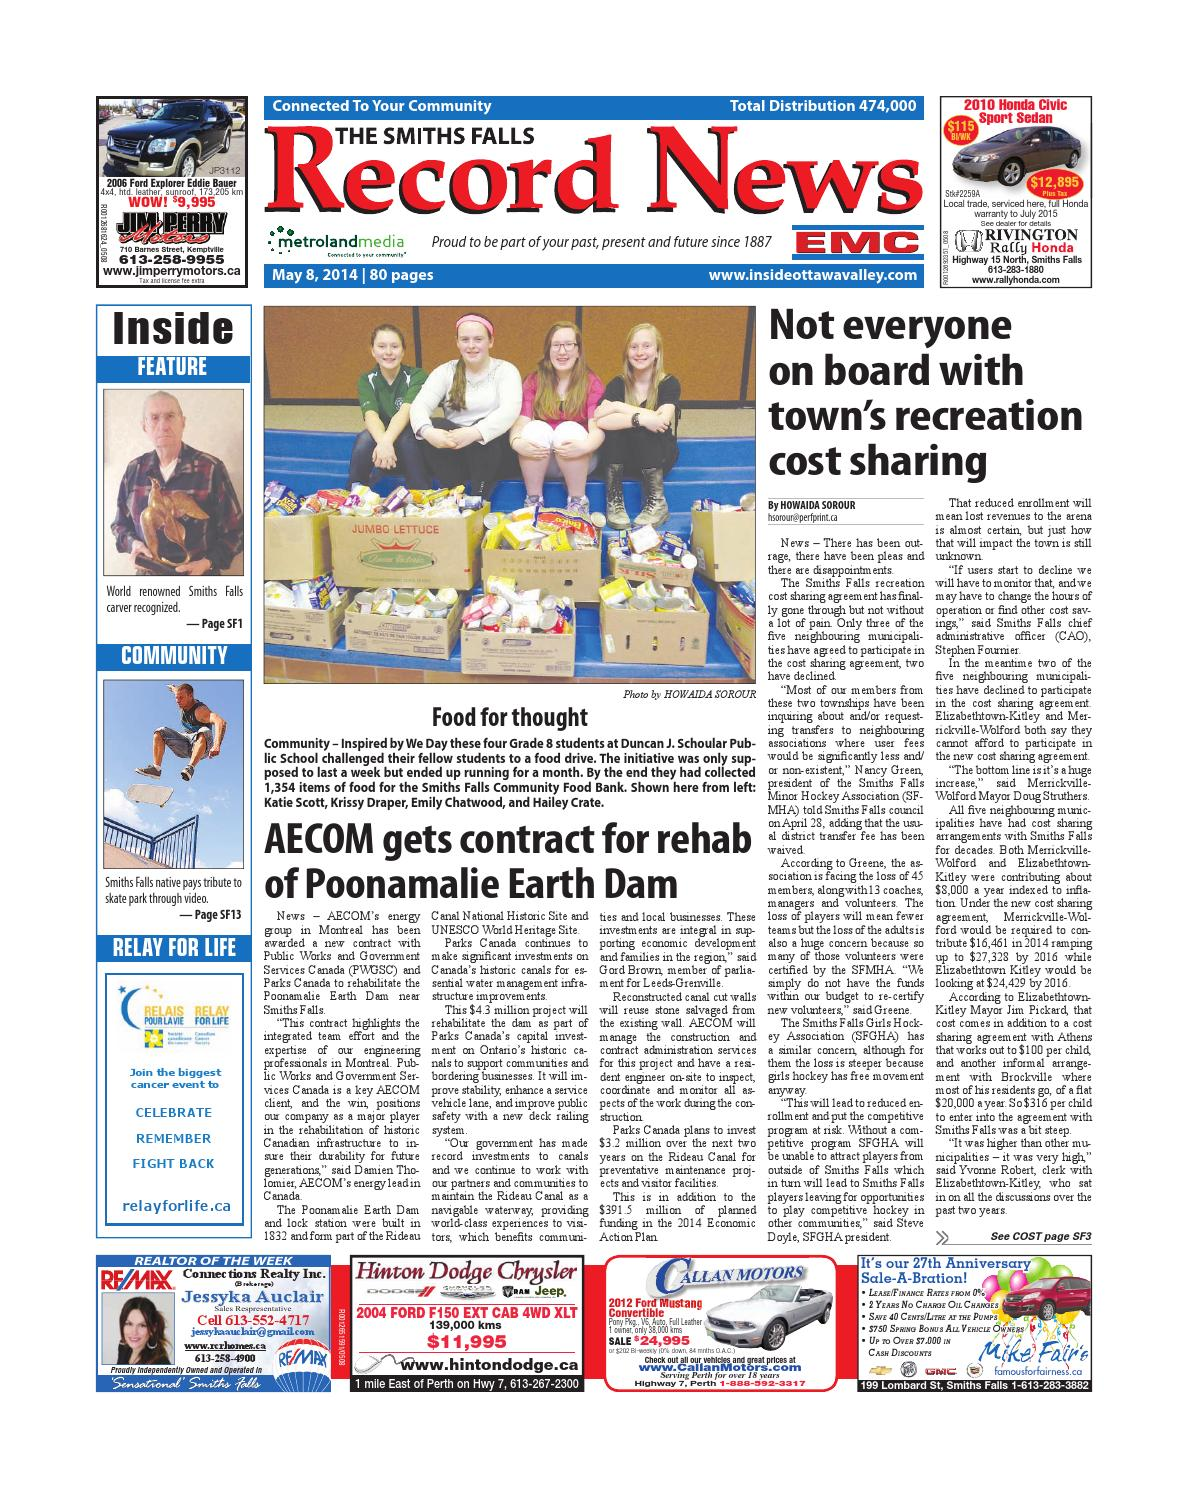 Smithsfalls050814 by metroland east smiths falls record news issuu fandeluxe Choice Image